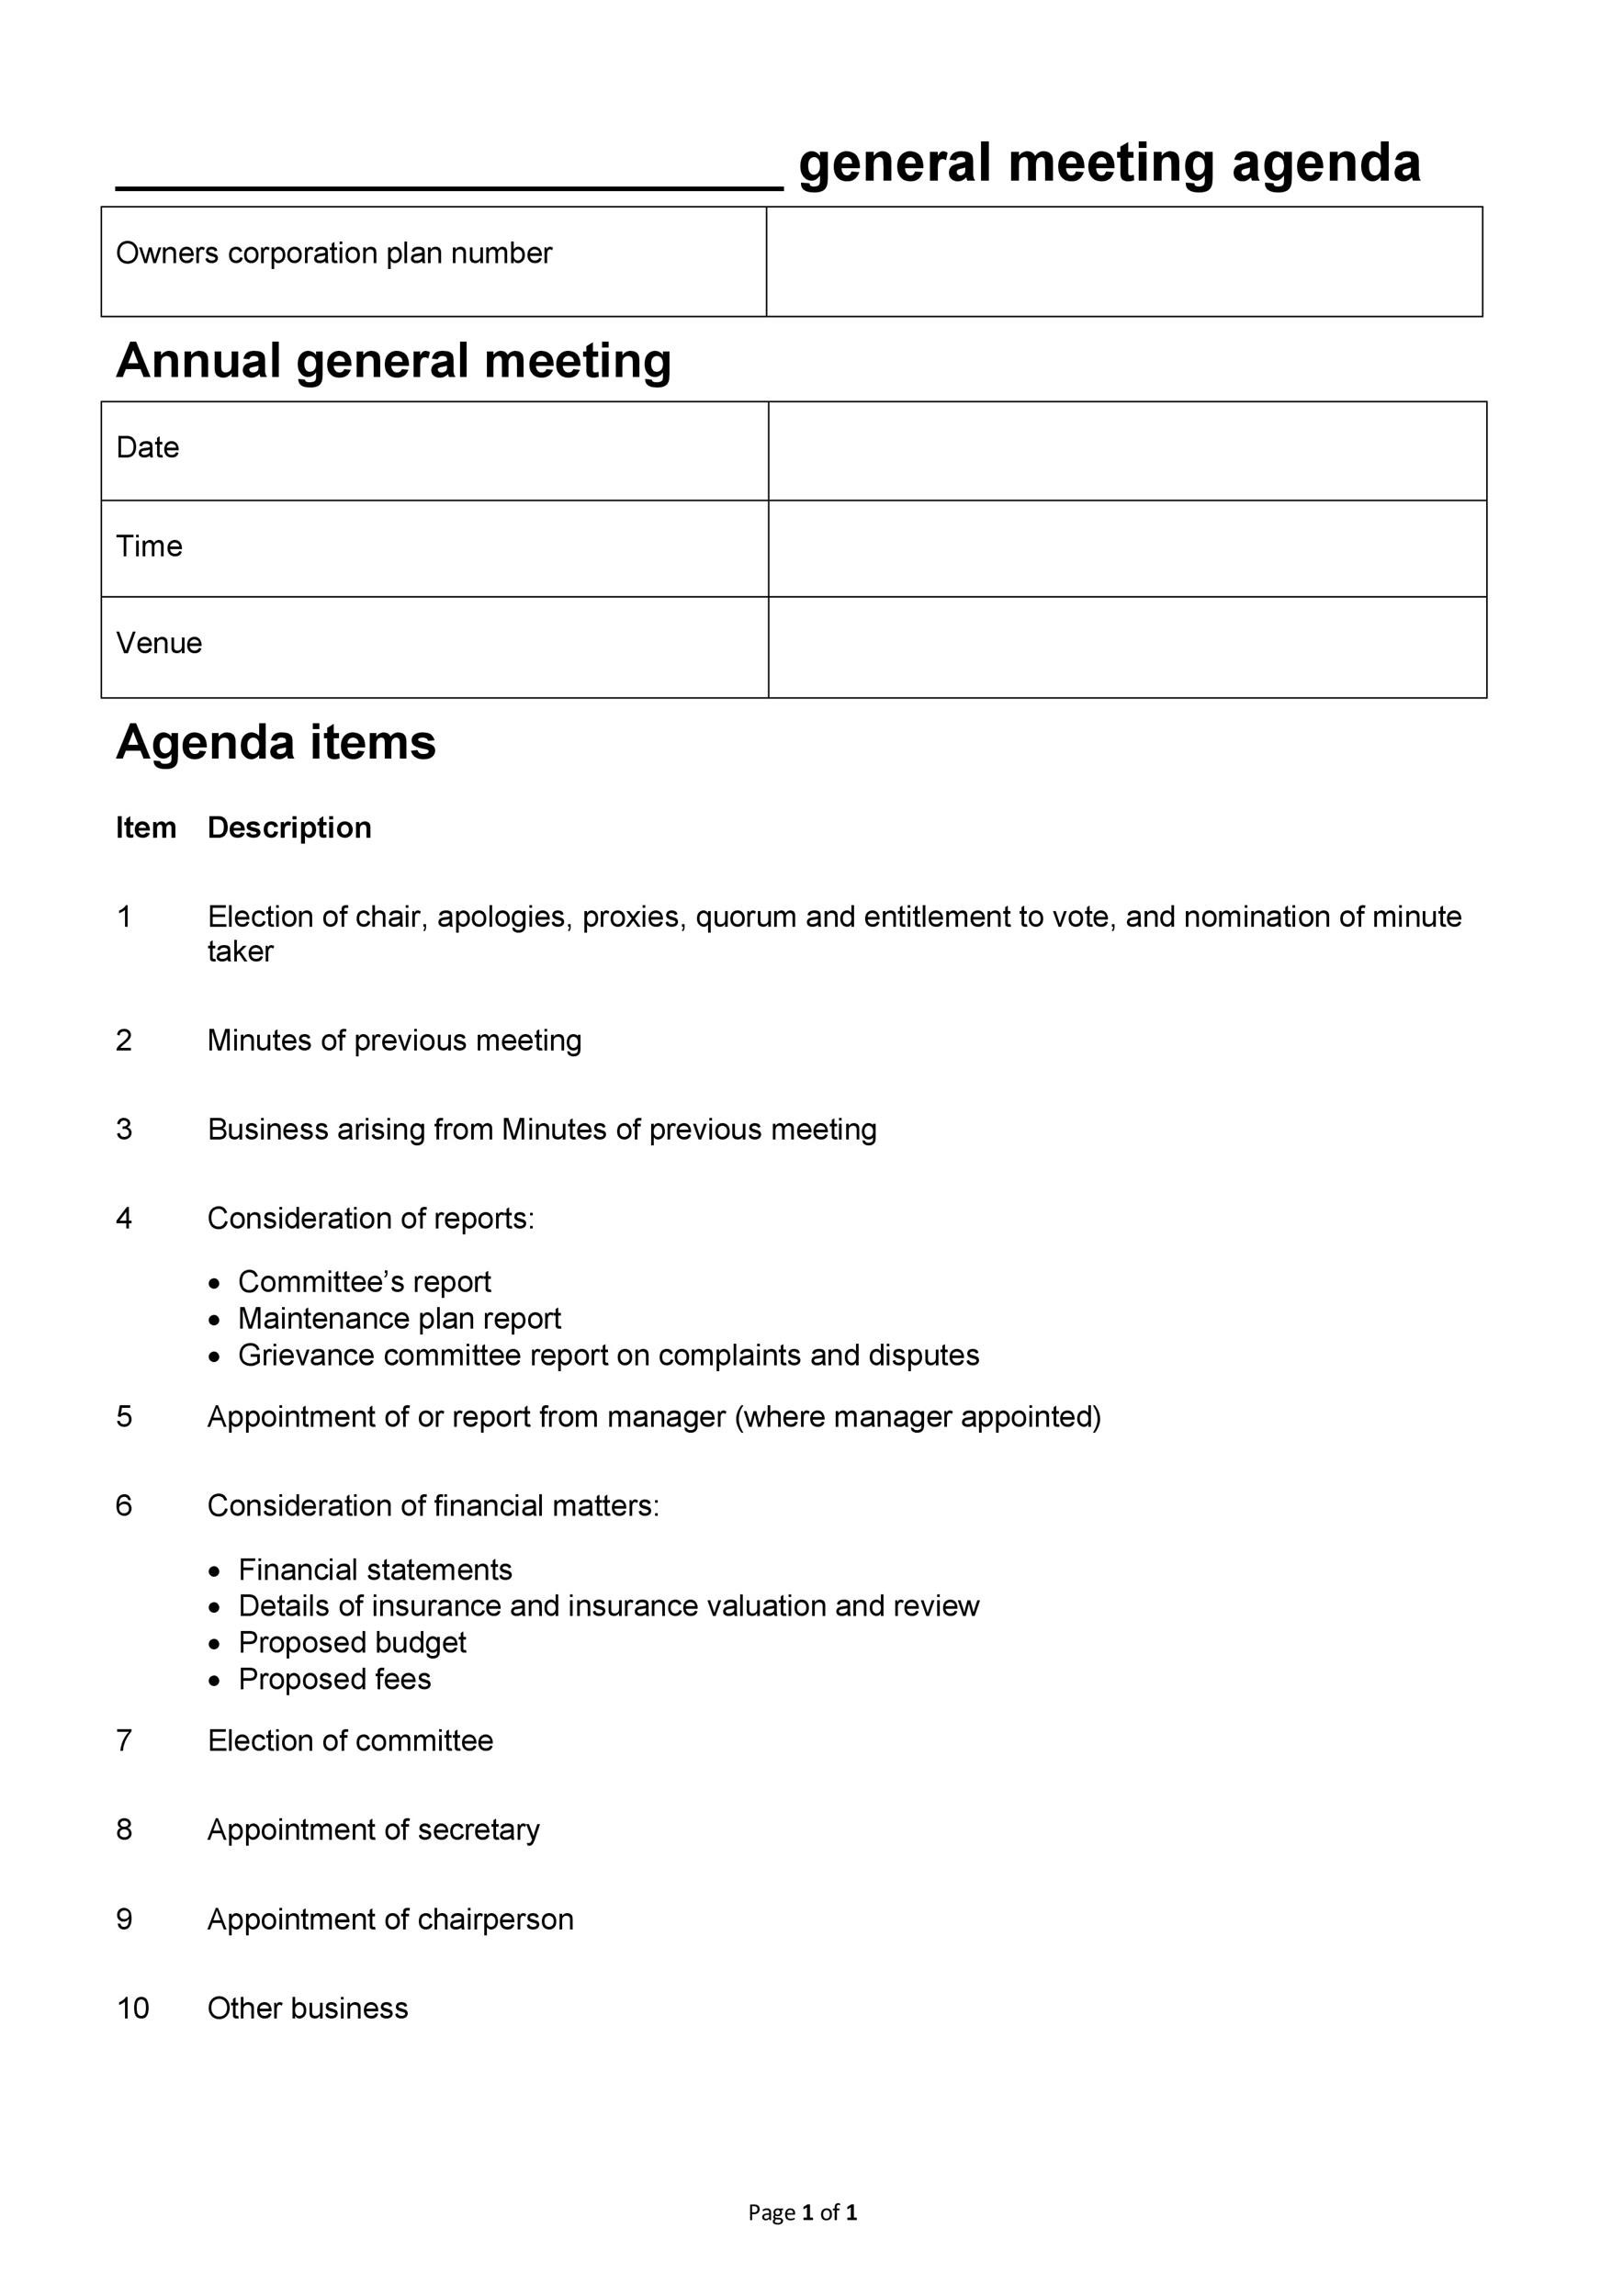 Meeting Agenda Samples. 46 Effective Meeting Agenda Templates